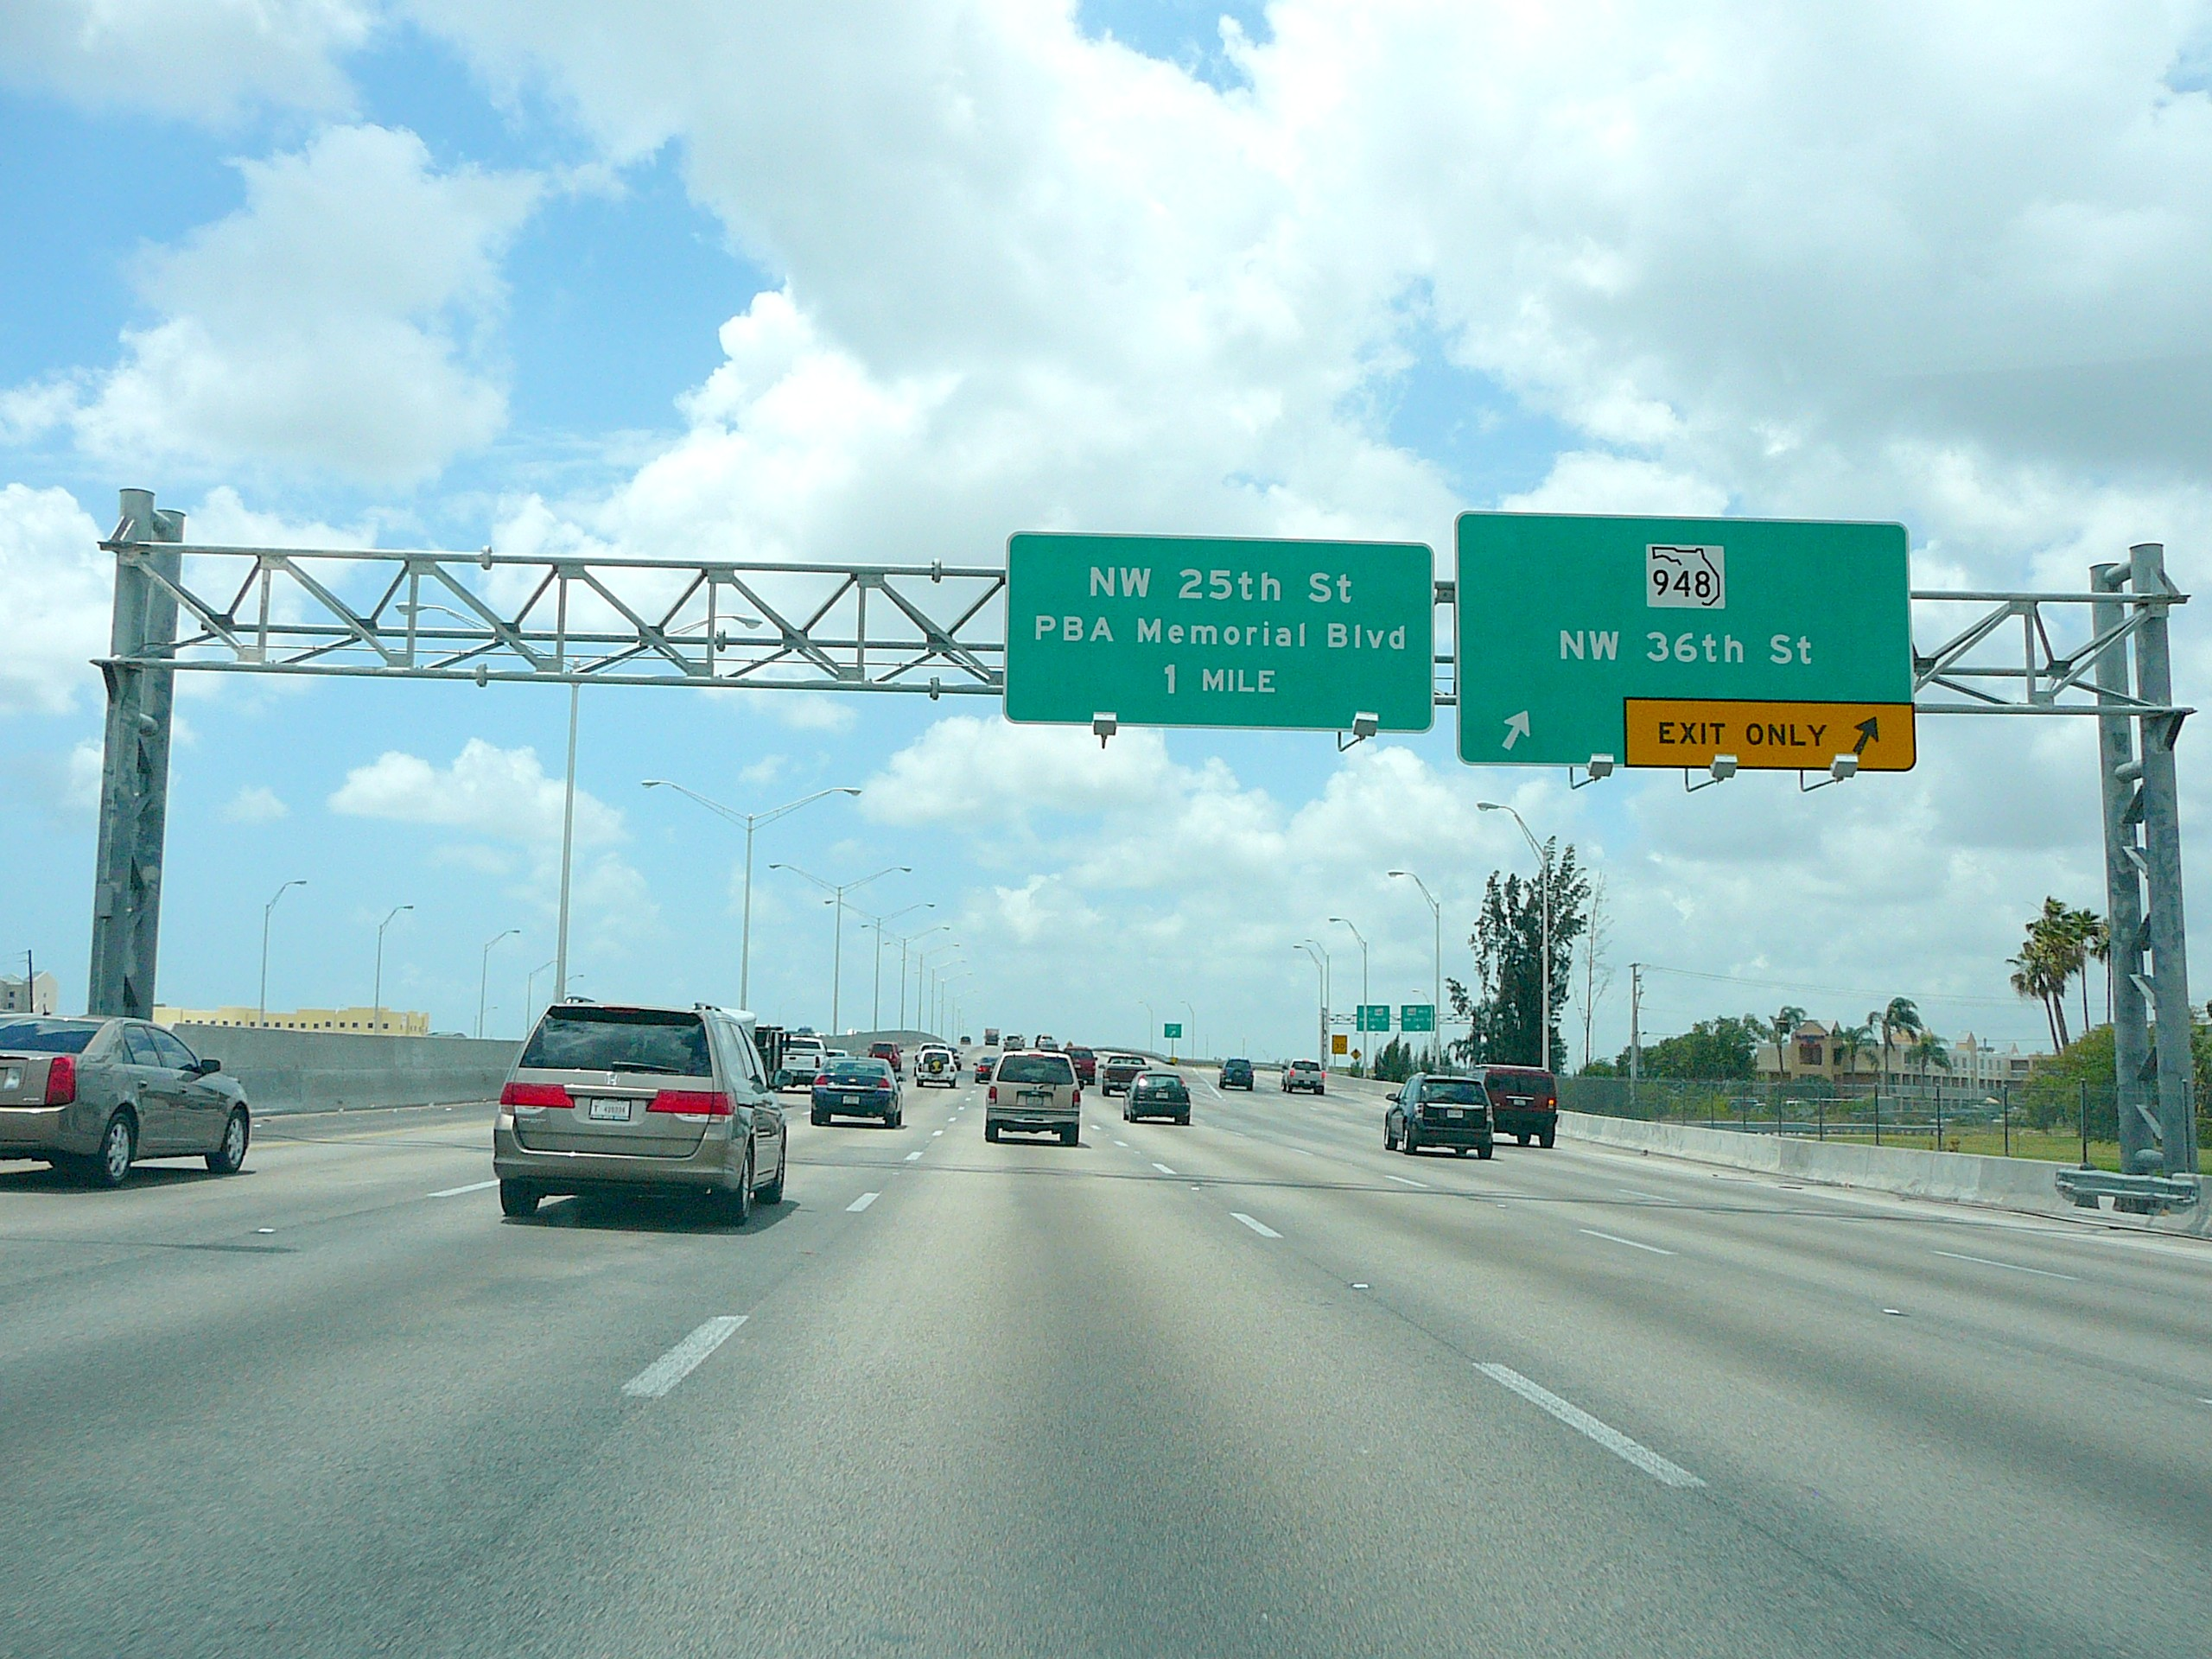 West Park To Palm Beach With Traffic